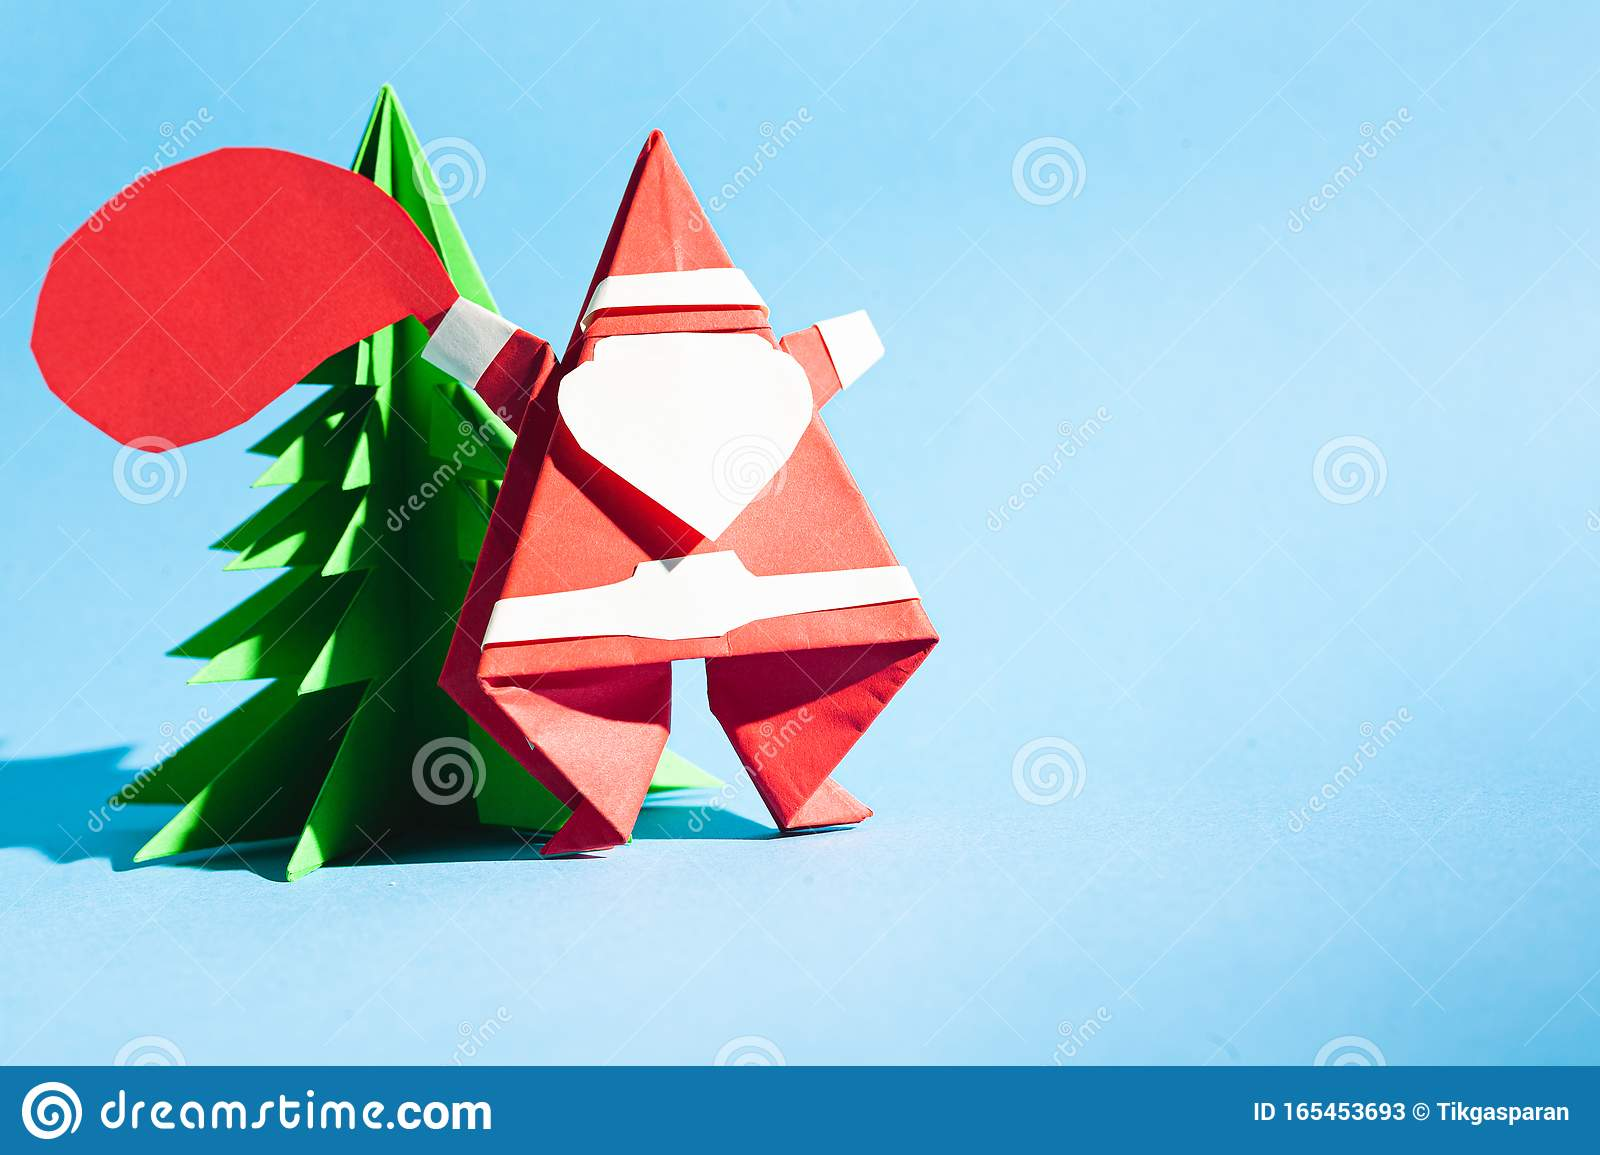 Postcard Star · Extract from Travel Origami by Cindy Ng · How To ...   1155x1600